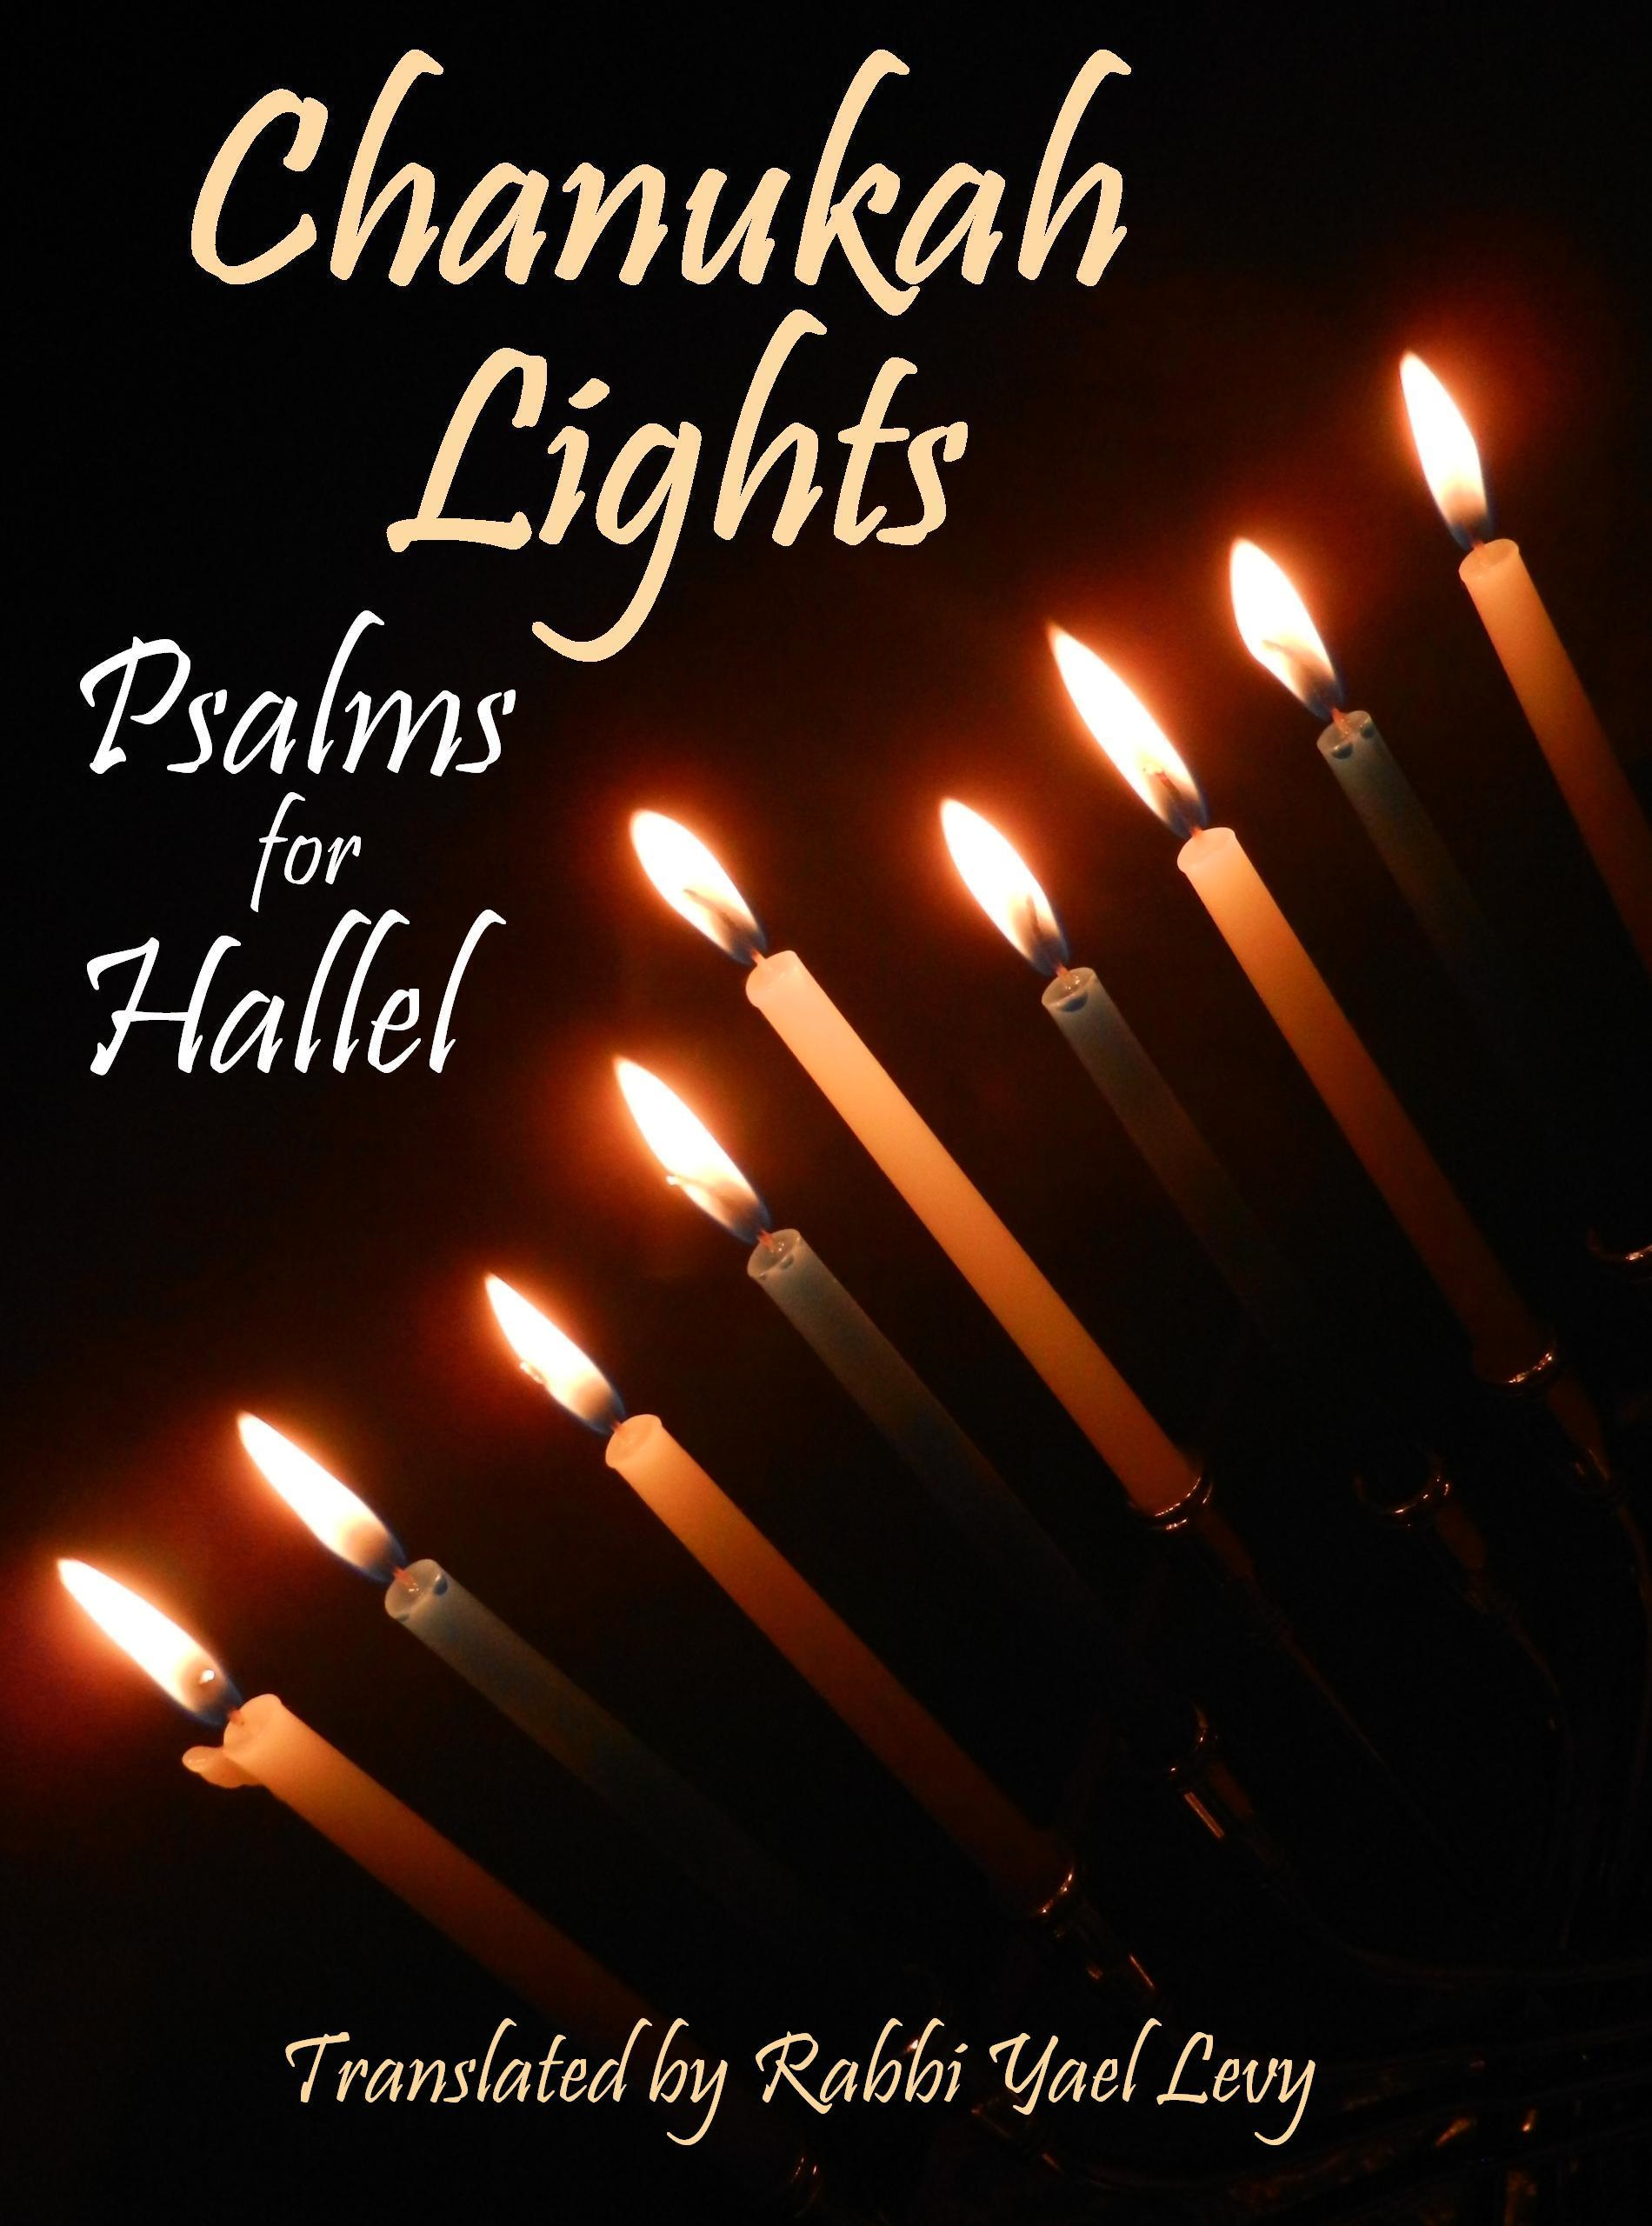 Chanukah Lights: Psalms for Hallel